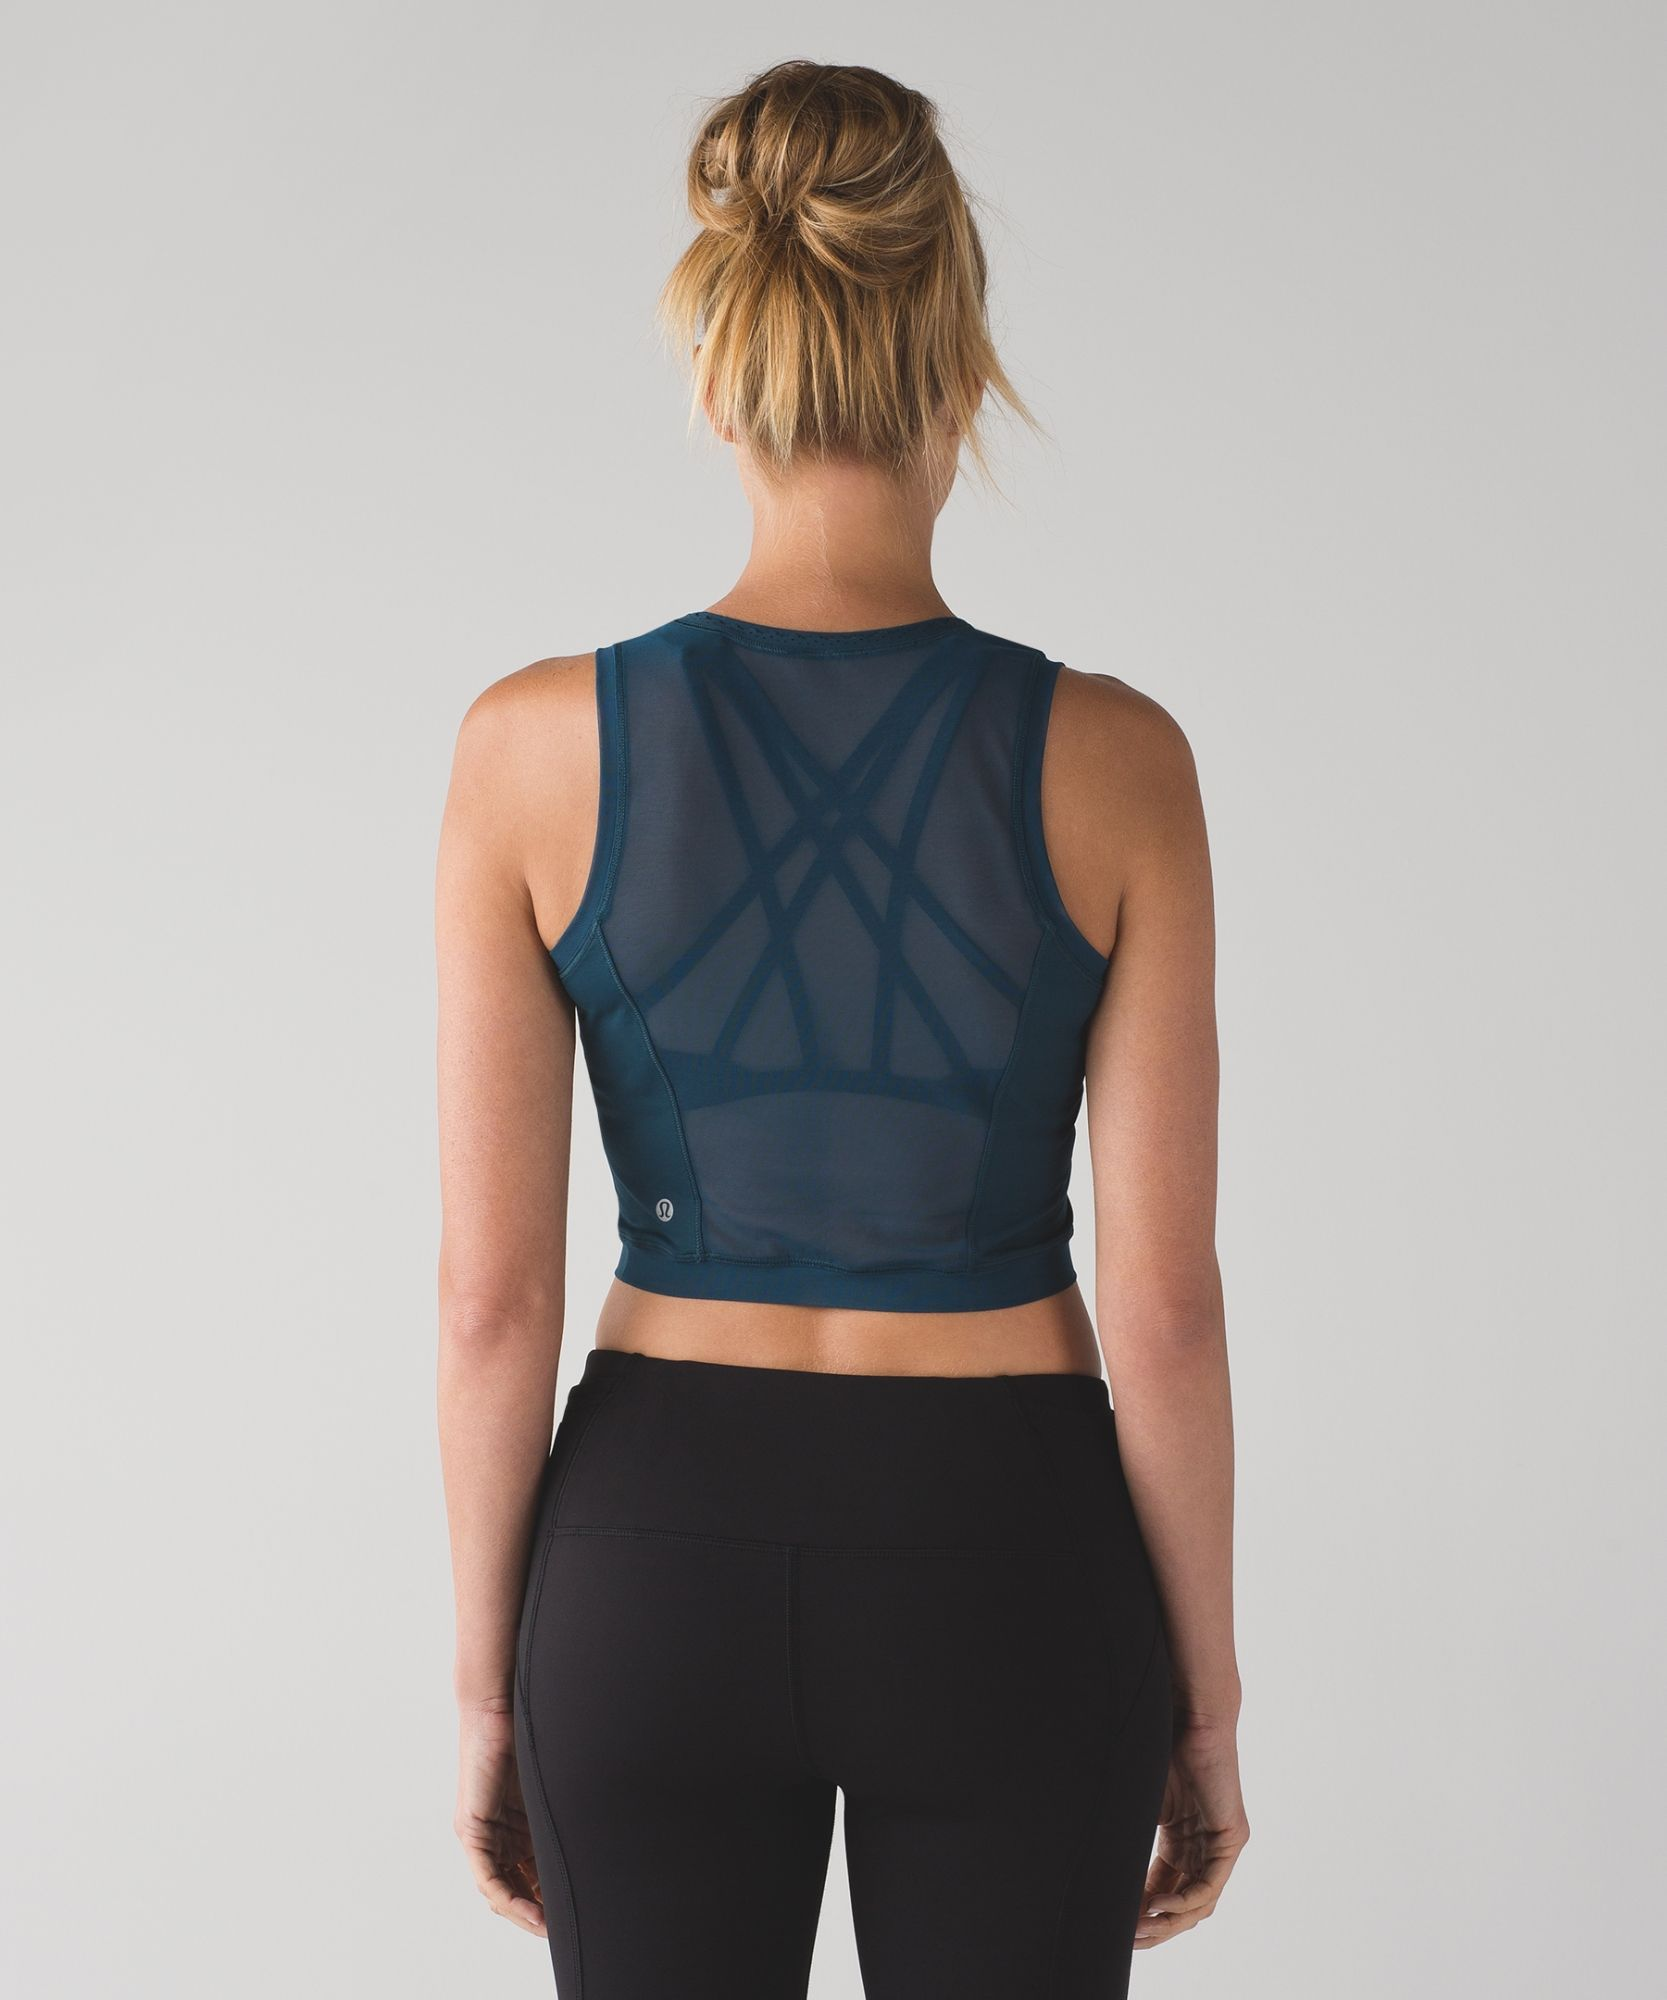 bd7476efe38f58 Keep cool when you re on the run in this high-neck crop top designed with  Mesh fabric for ventilation.